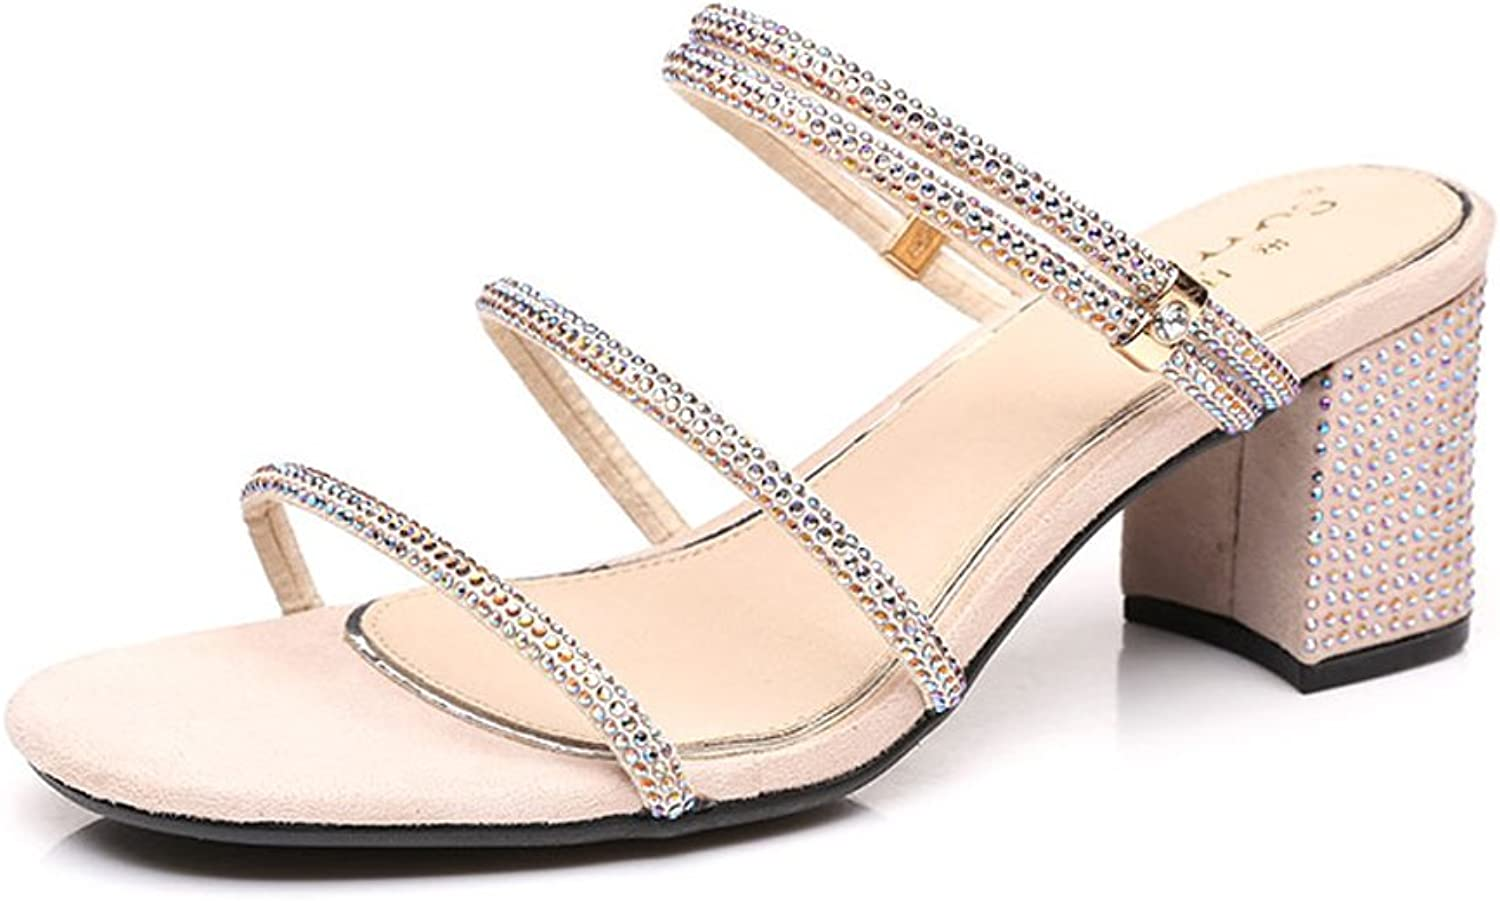 WANGXIAOLIN Summer Women's Sandals Two Wear Rhinestone Buckle Female Coarse With Sandals ( color   Nude , Size   35 )